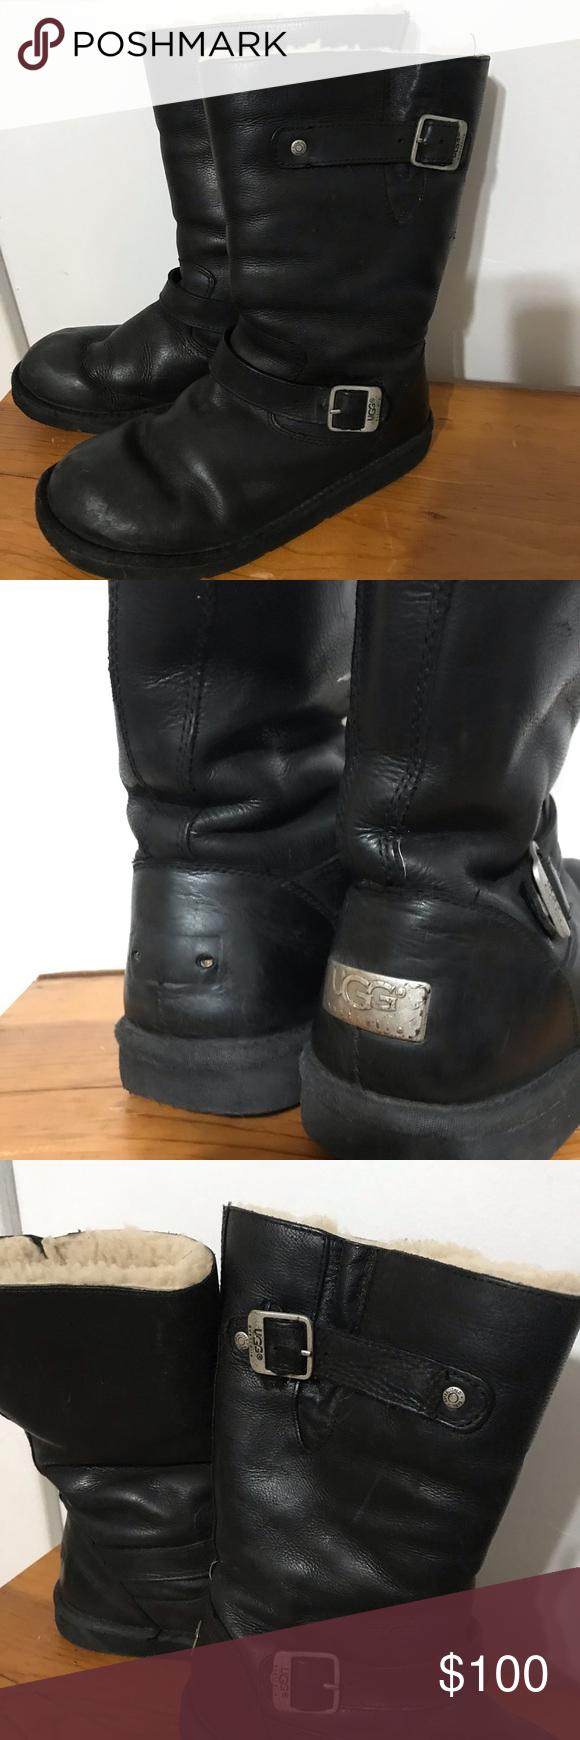 12456446c06 UGG Sutter Black Leather Boots 9 Shearling Moto Warm, durable Ugg ...